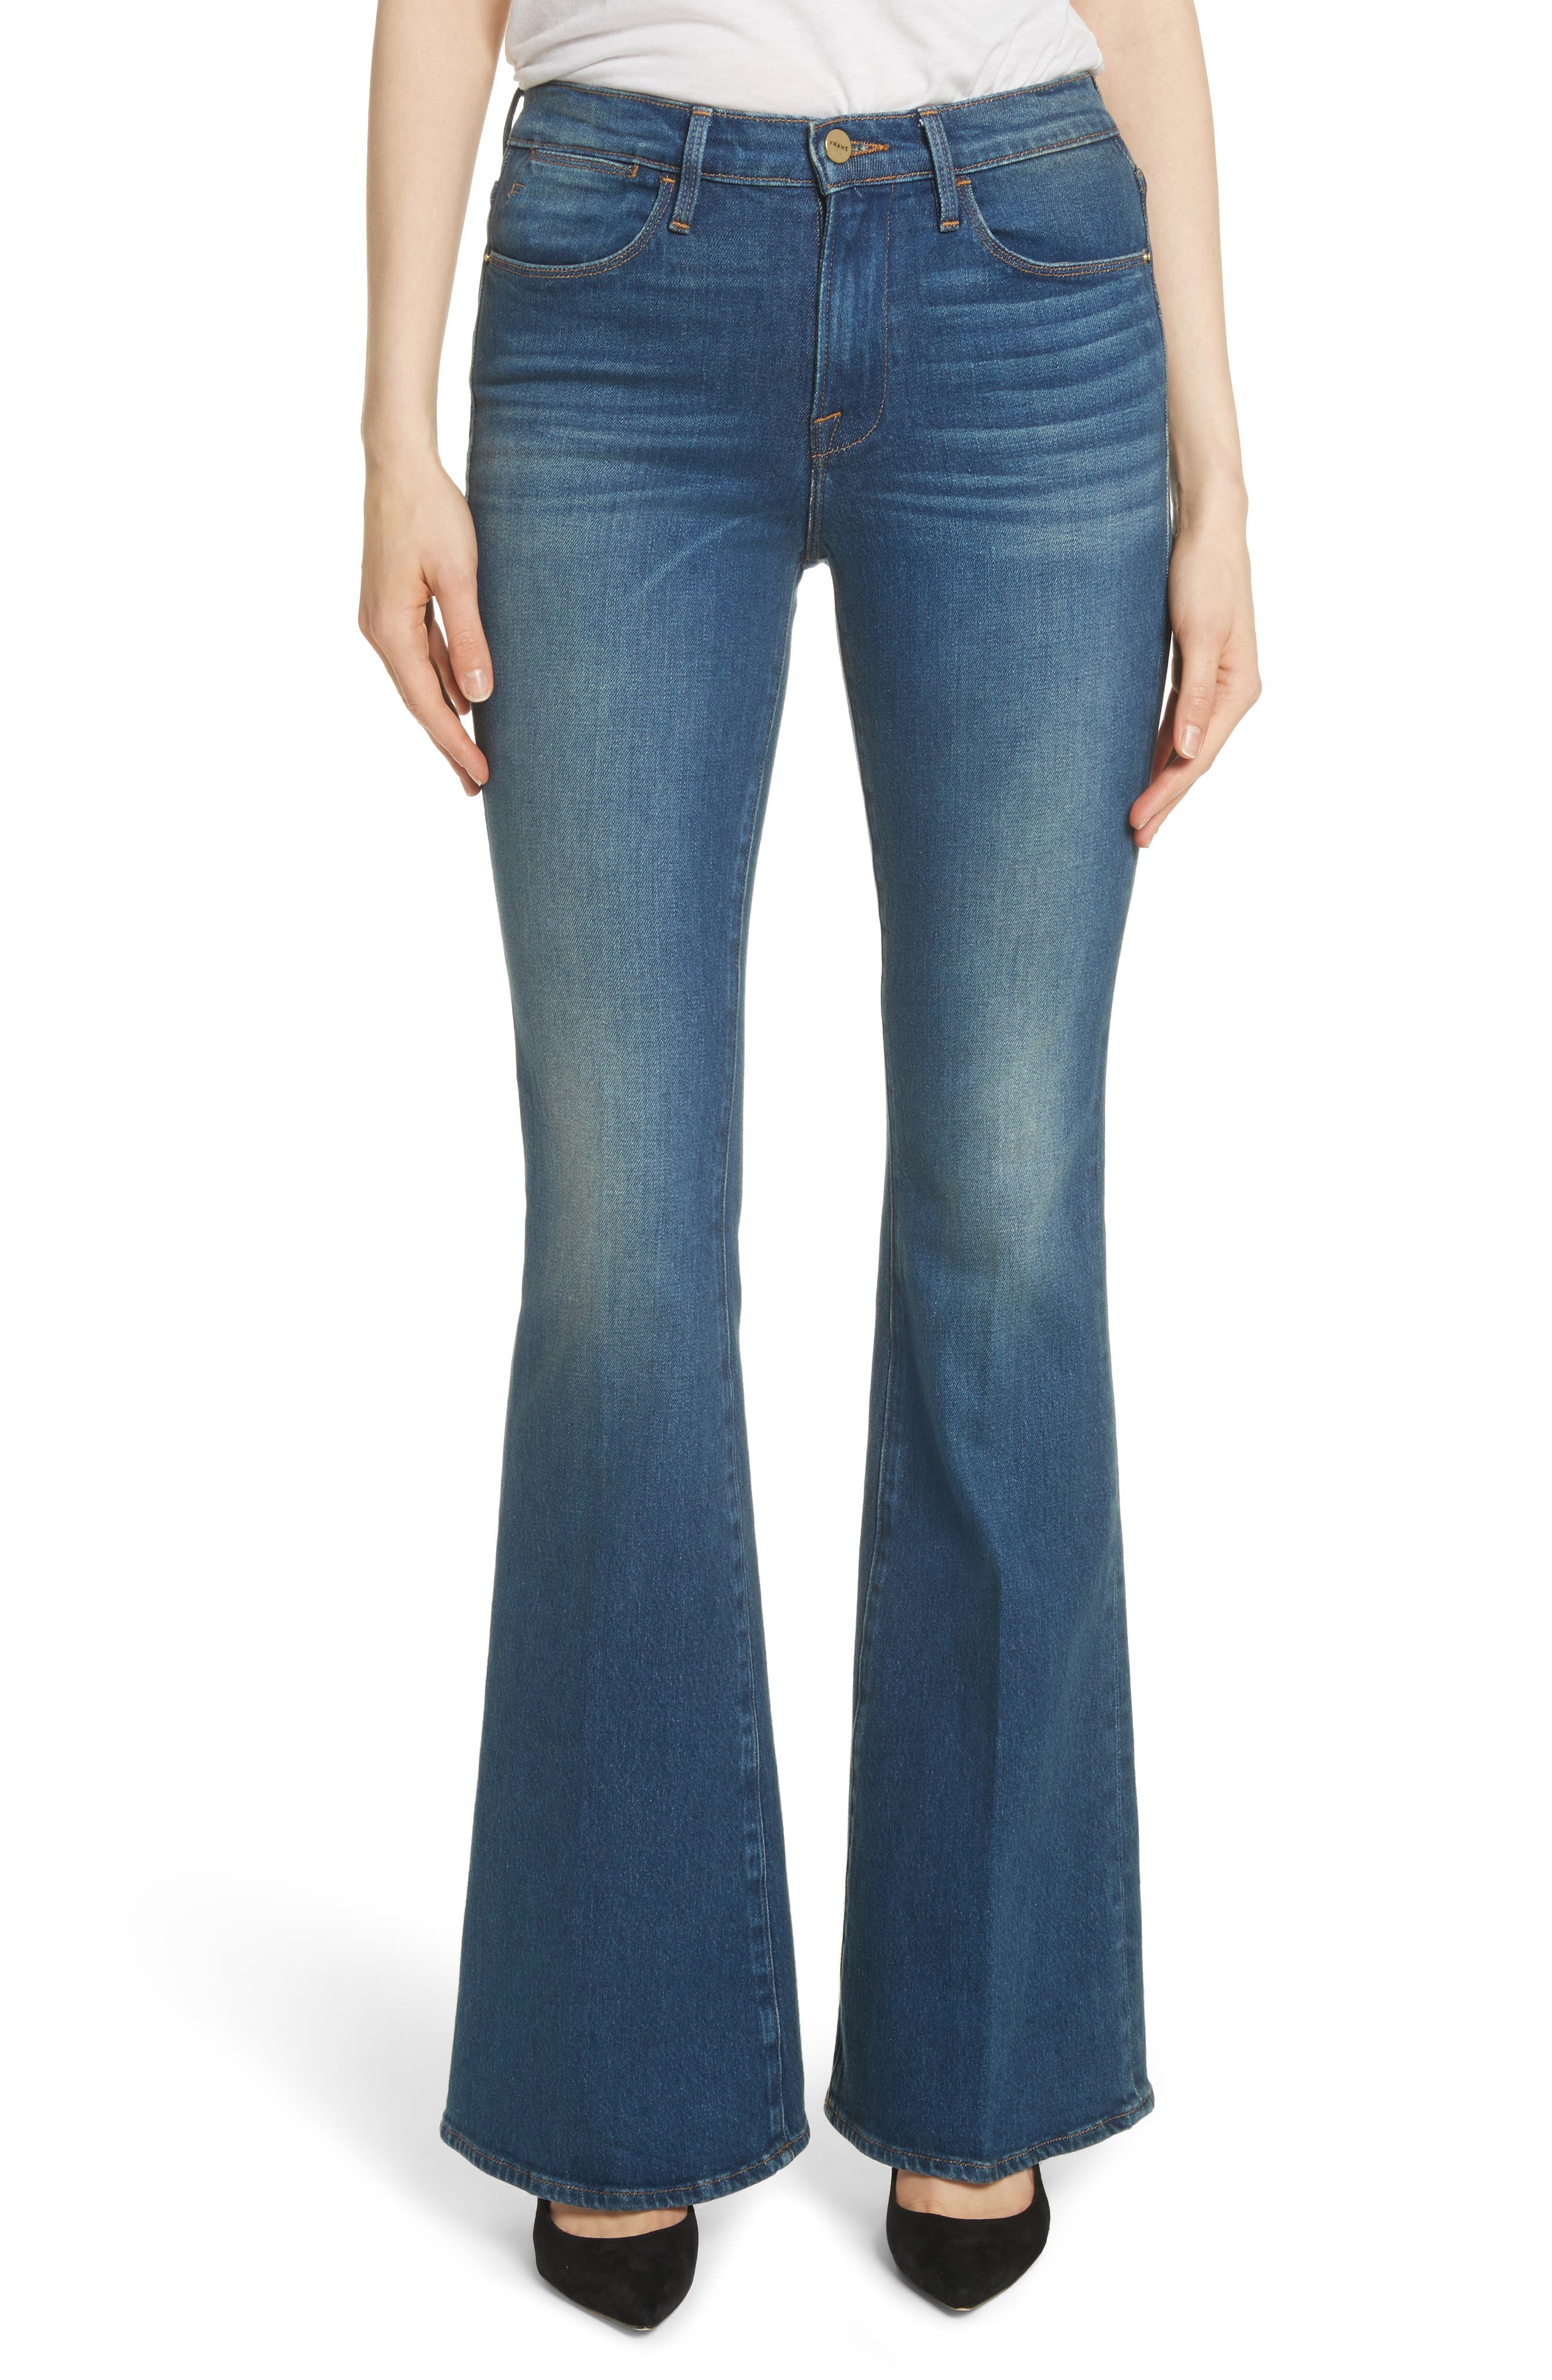 Le High Flare Jeans,                             Main thumbnail 1, color,                             401